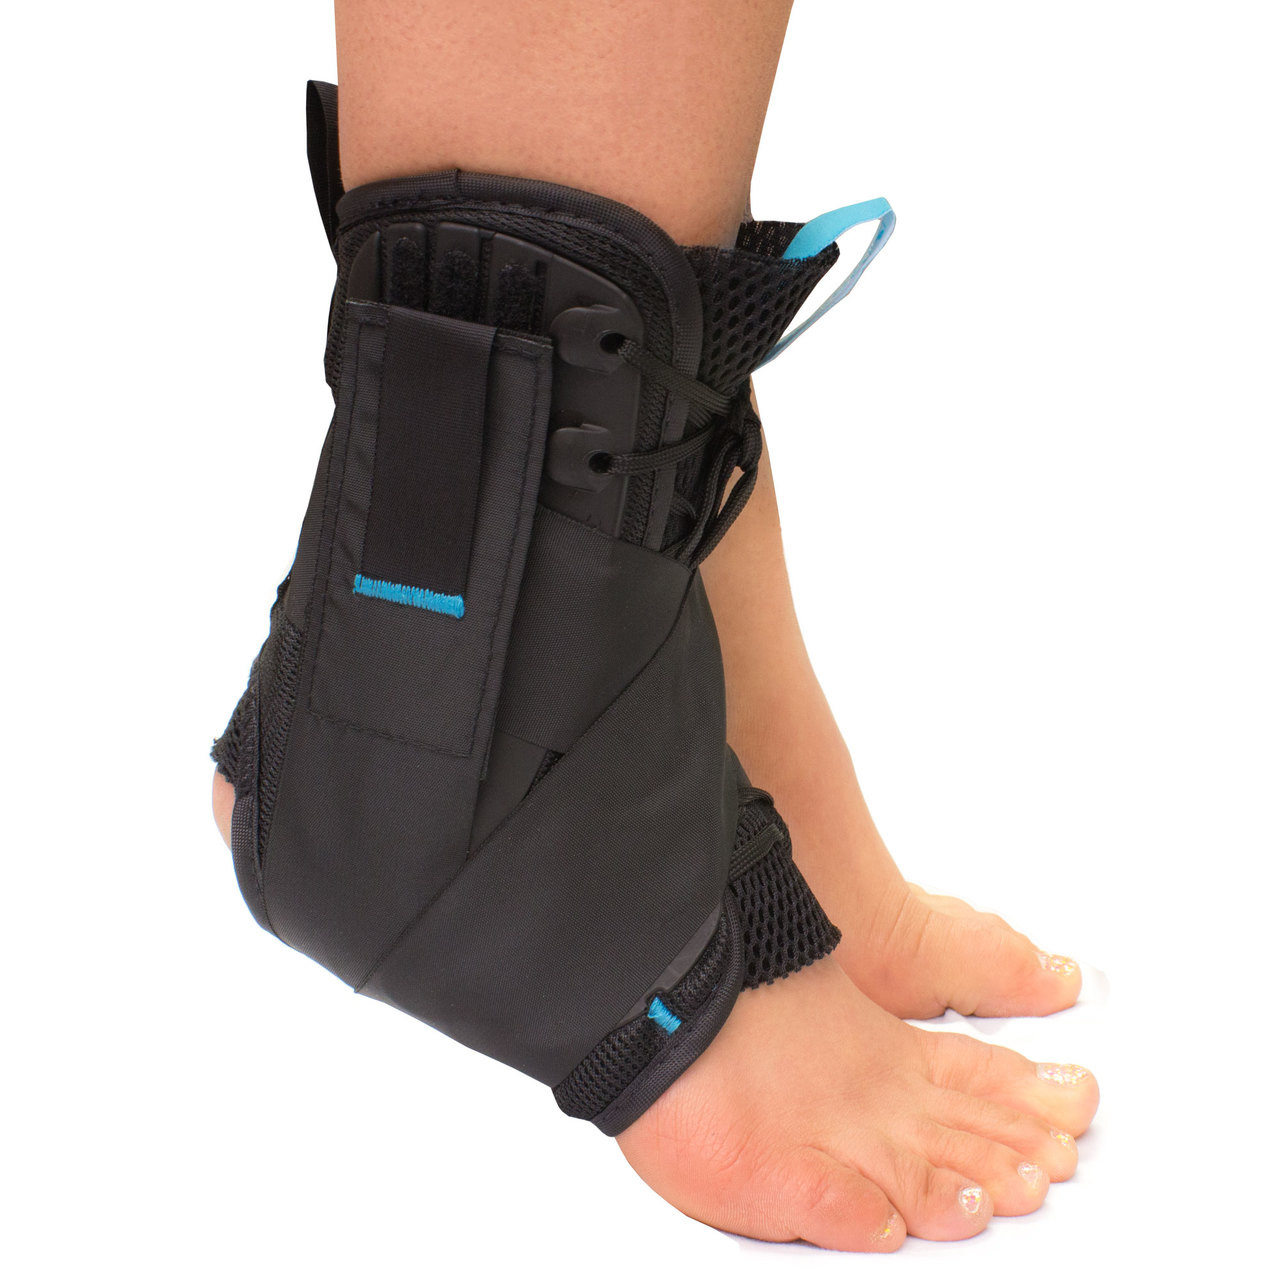 Lace-Up Ankle Brace / Foot Support For Large Ankles